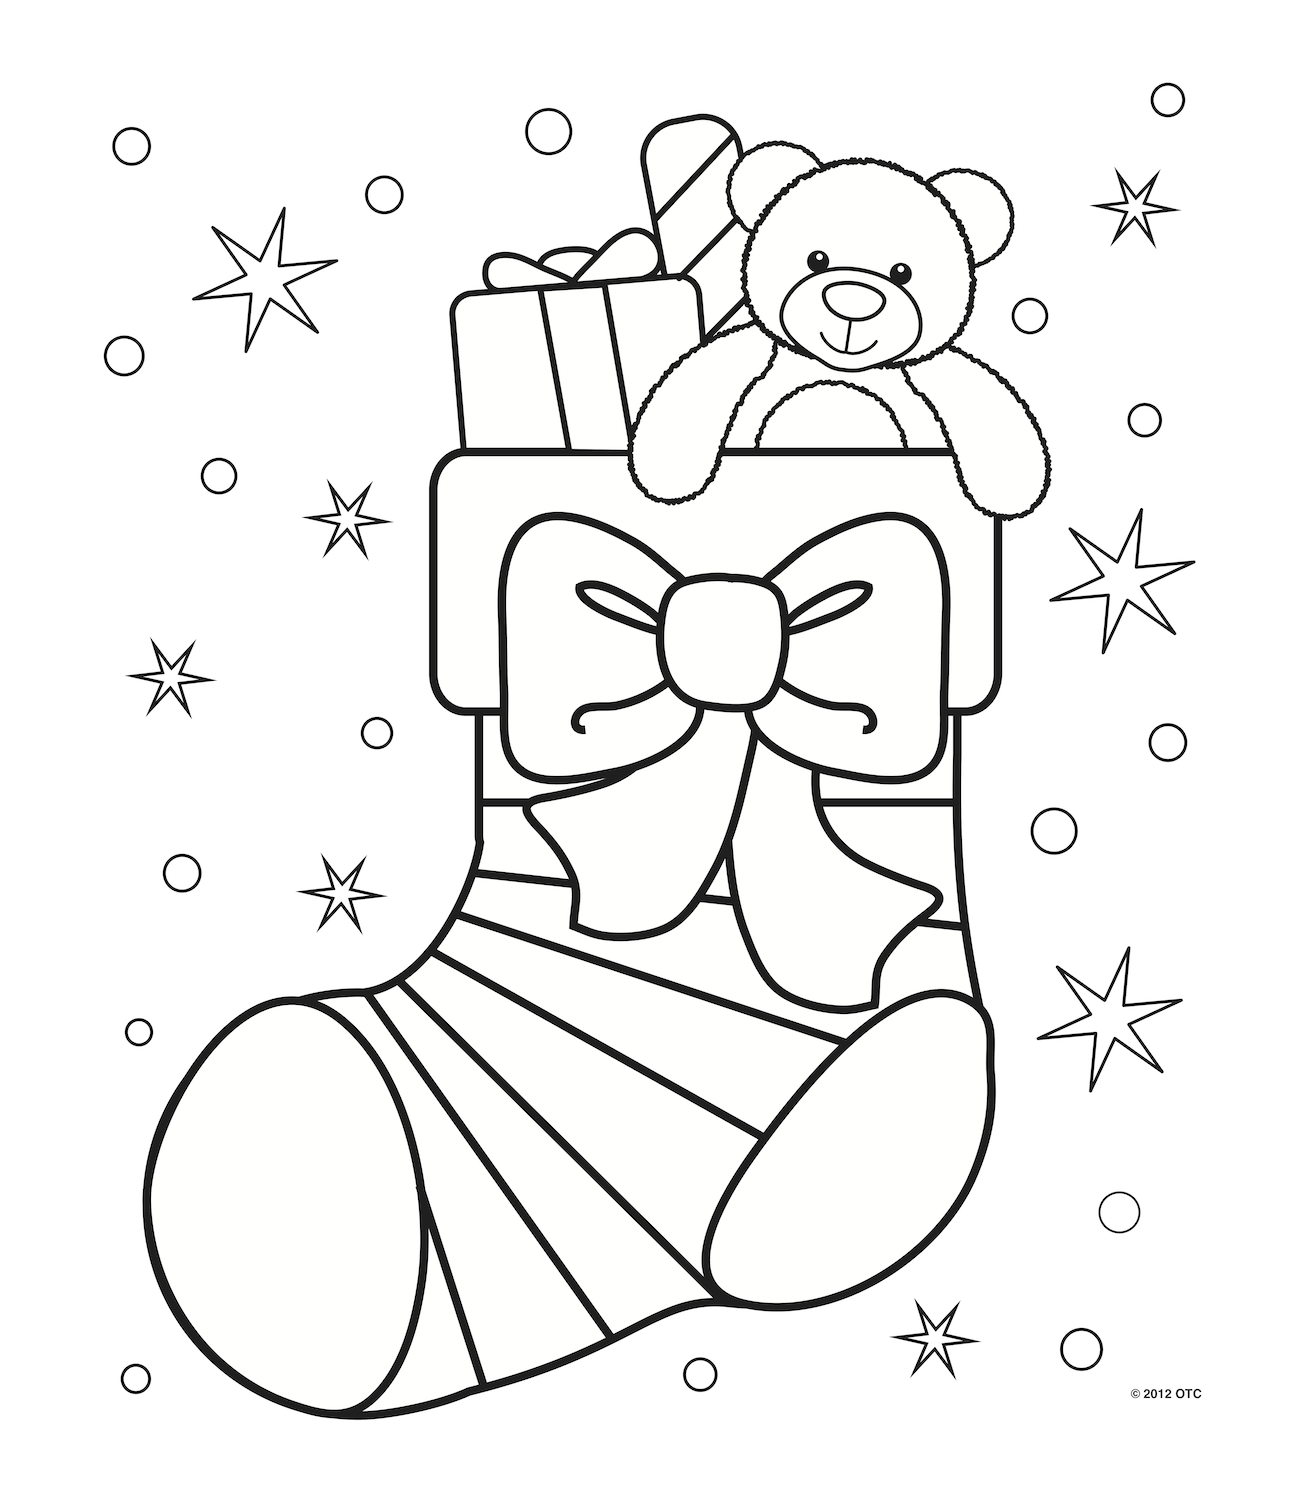 istmas coloring pages - photo#9